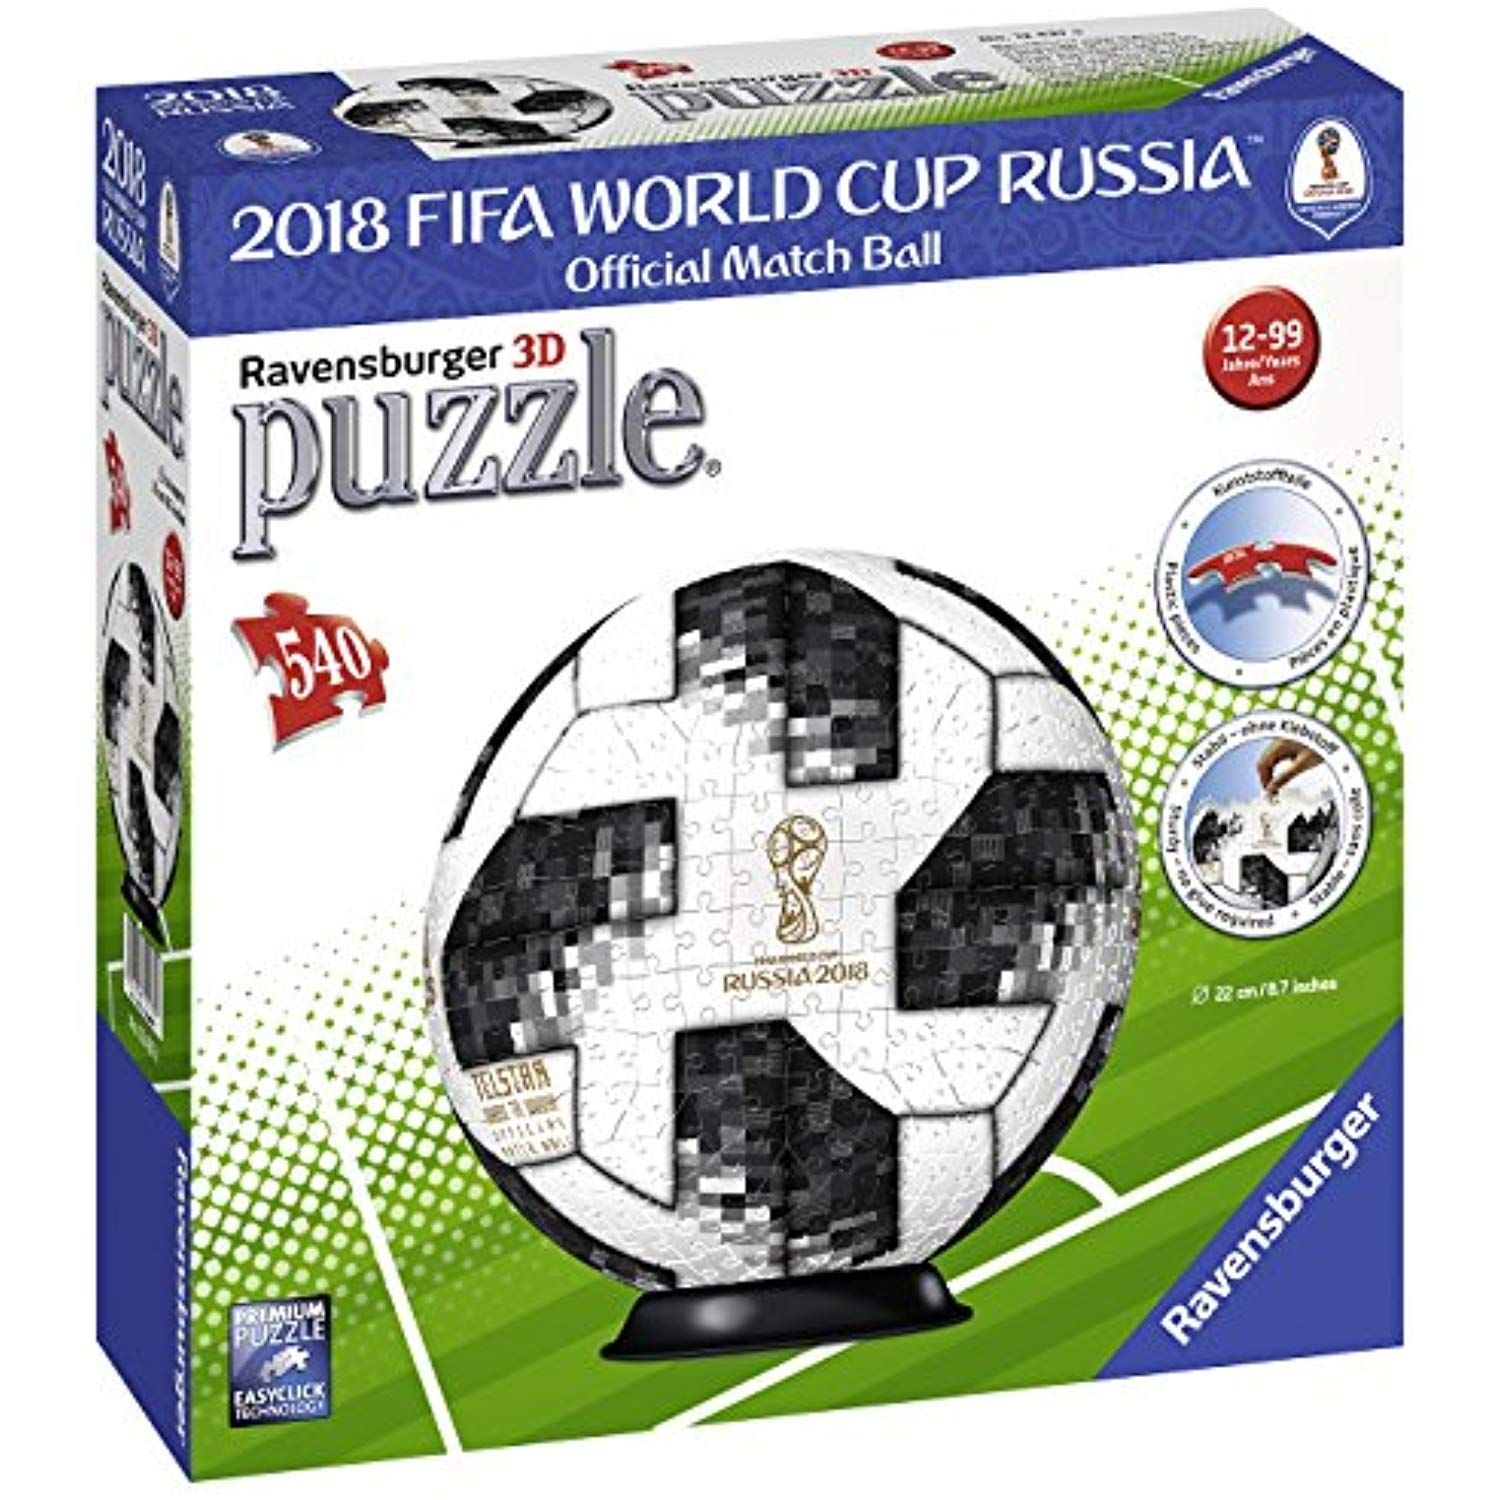 Ravensburger Adidas 2018 World Cup Puzzle Ball 3D (540